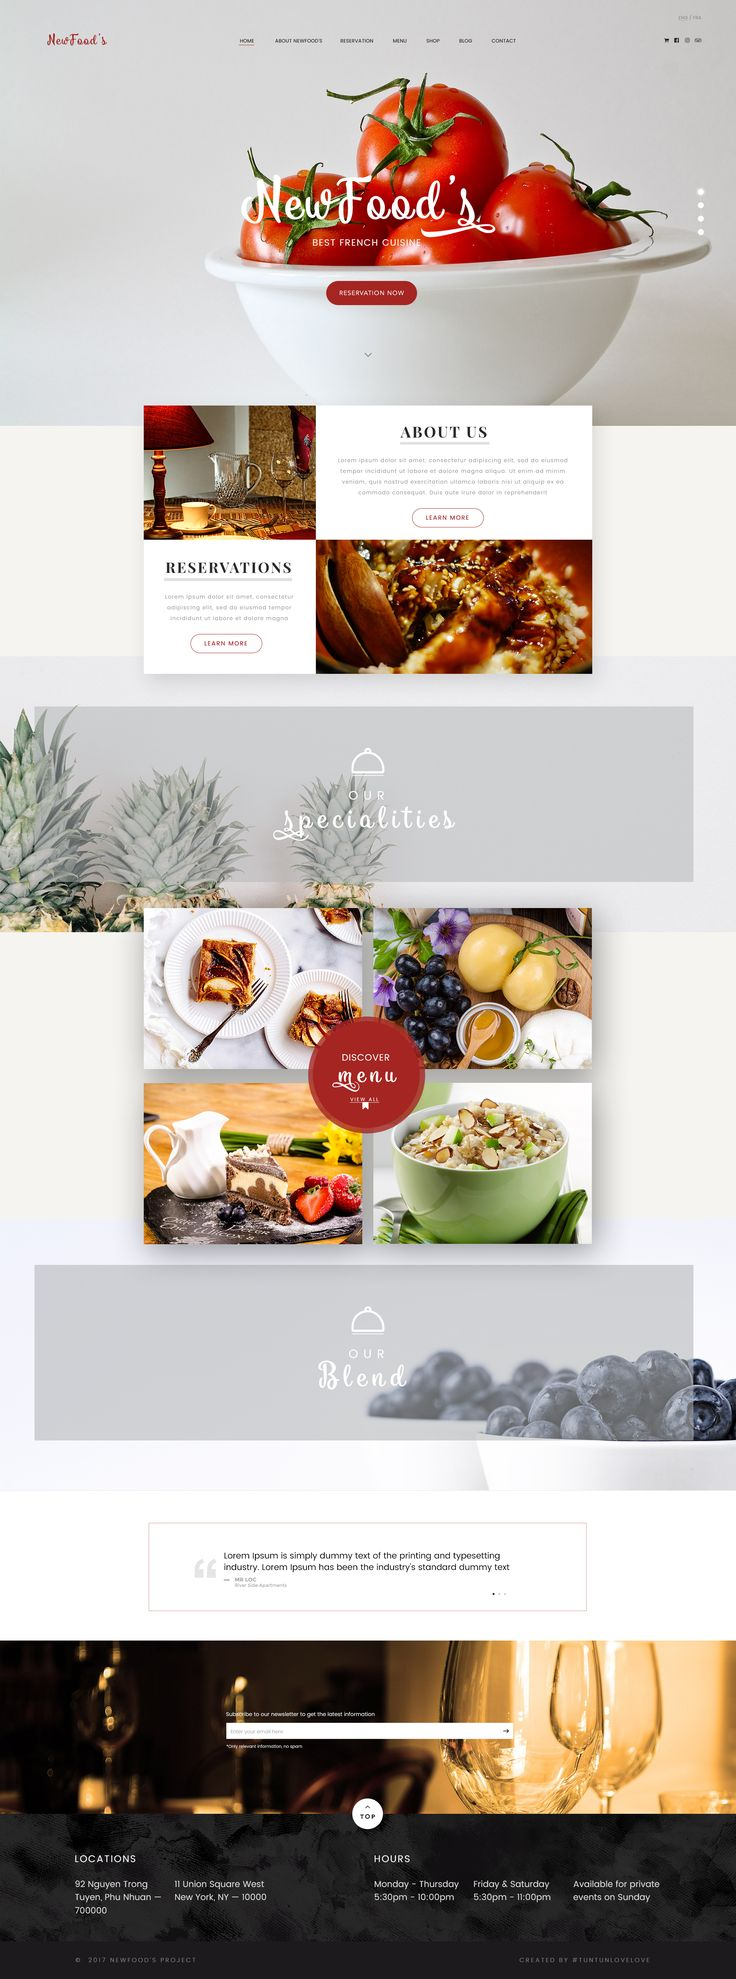 NewFood's   is a daring PSD Template build to help restaurant and other culinary owners to shape an experience that people love and remember. It gives enough freedom to make it your own by tailoring to a specific set of bold needs and preferences.  #cake #clean #creative #customizable, flexible #food #luxury #minimal #modern #onlinestore #professional #responsive #restaurant #service #website #interface